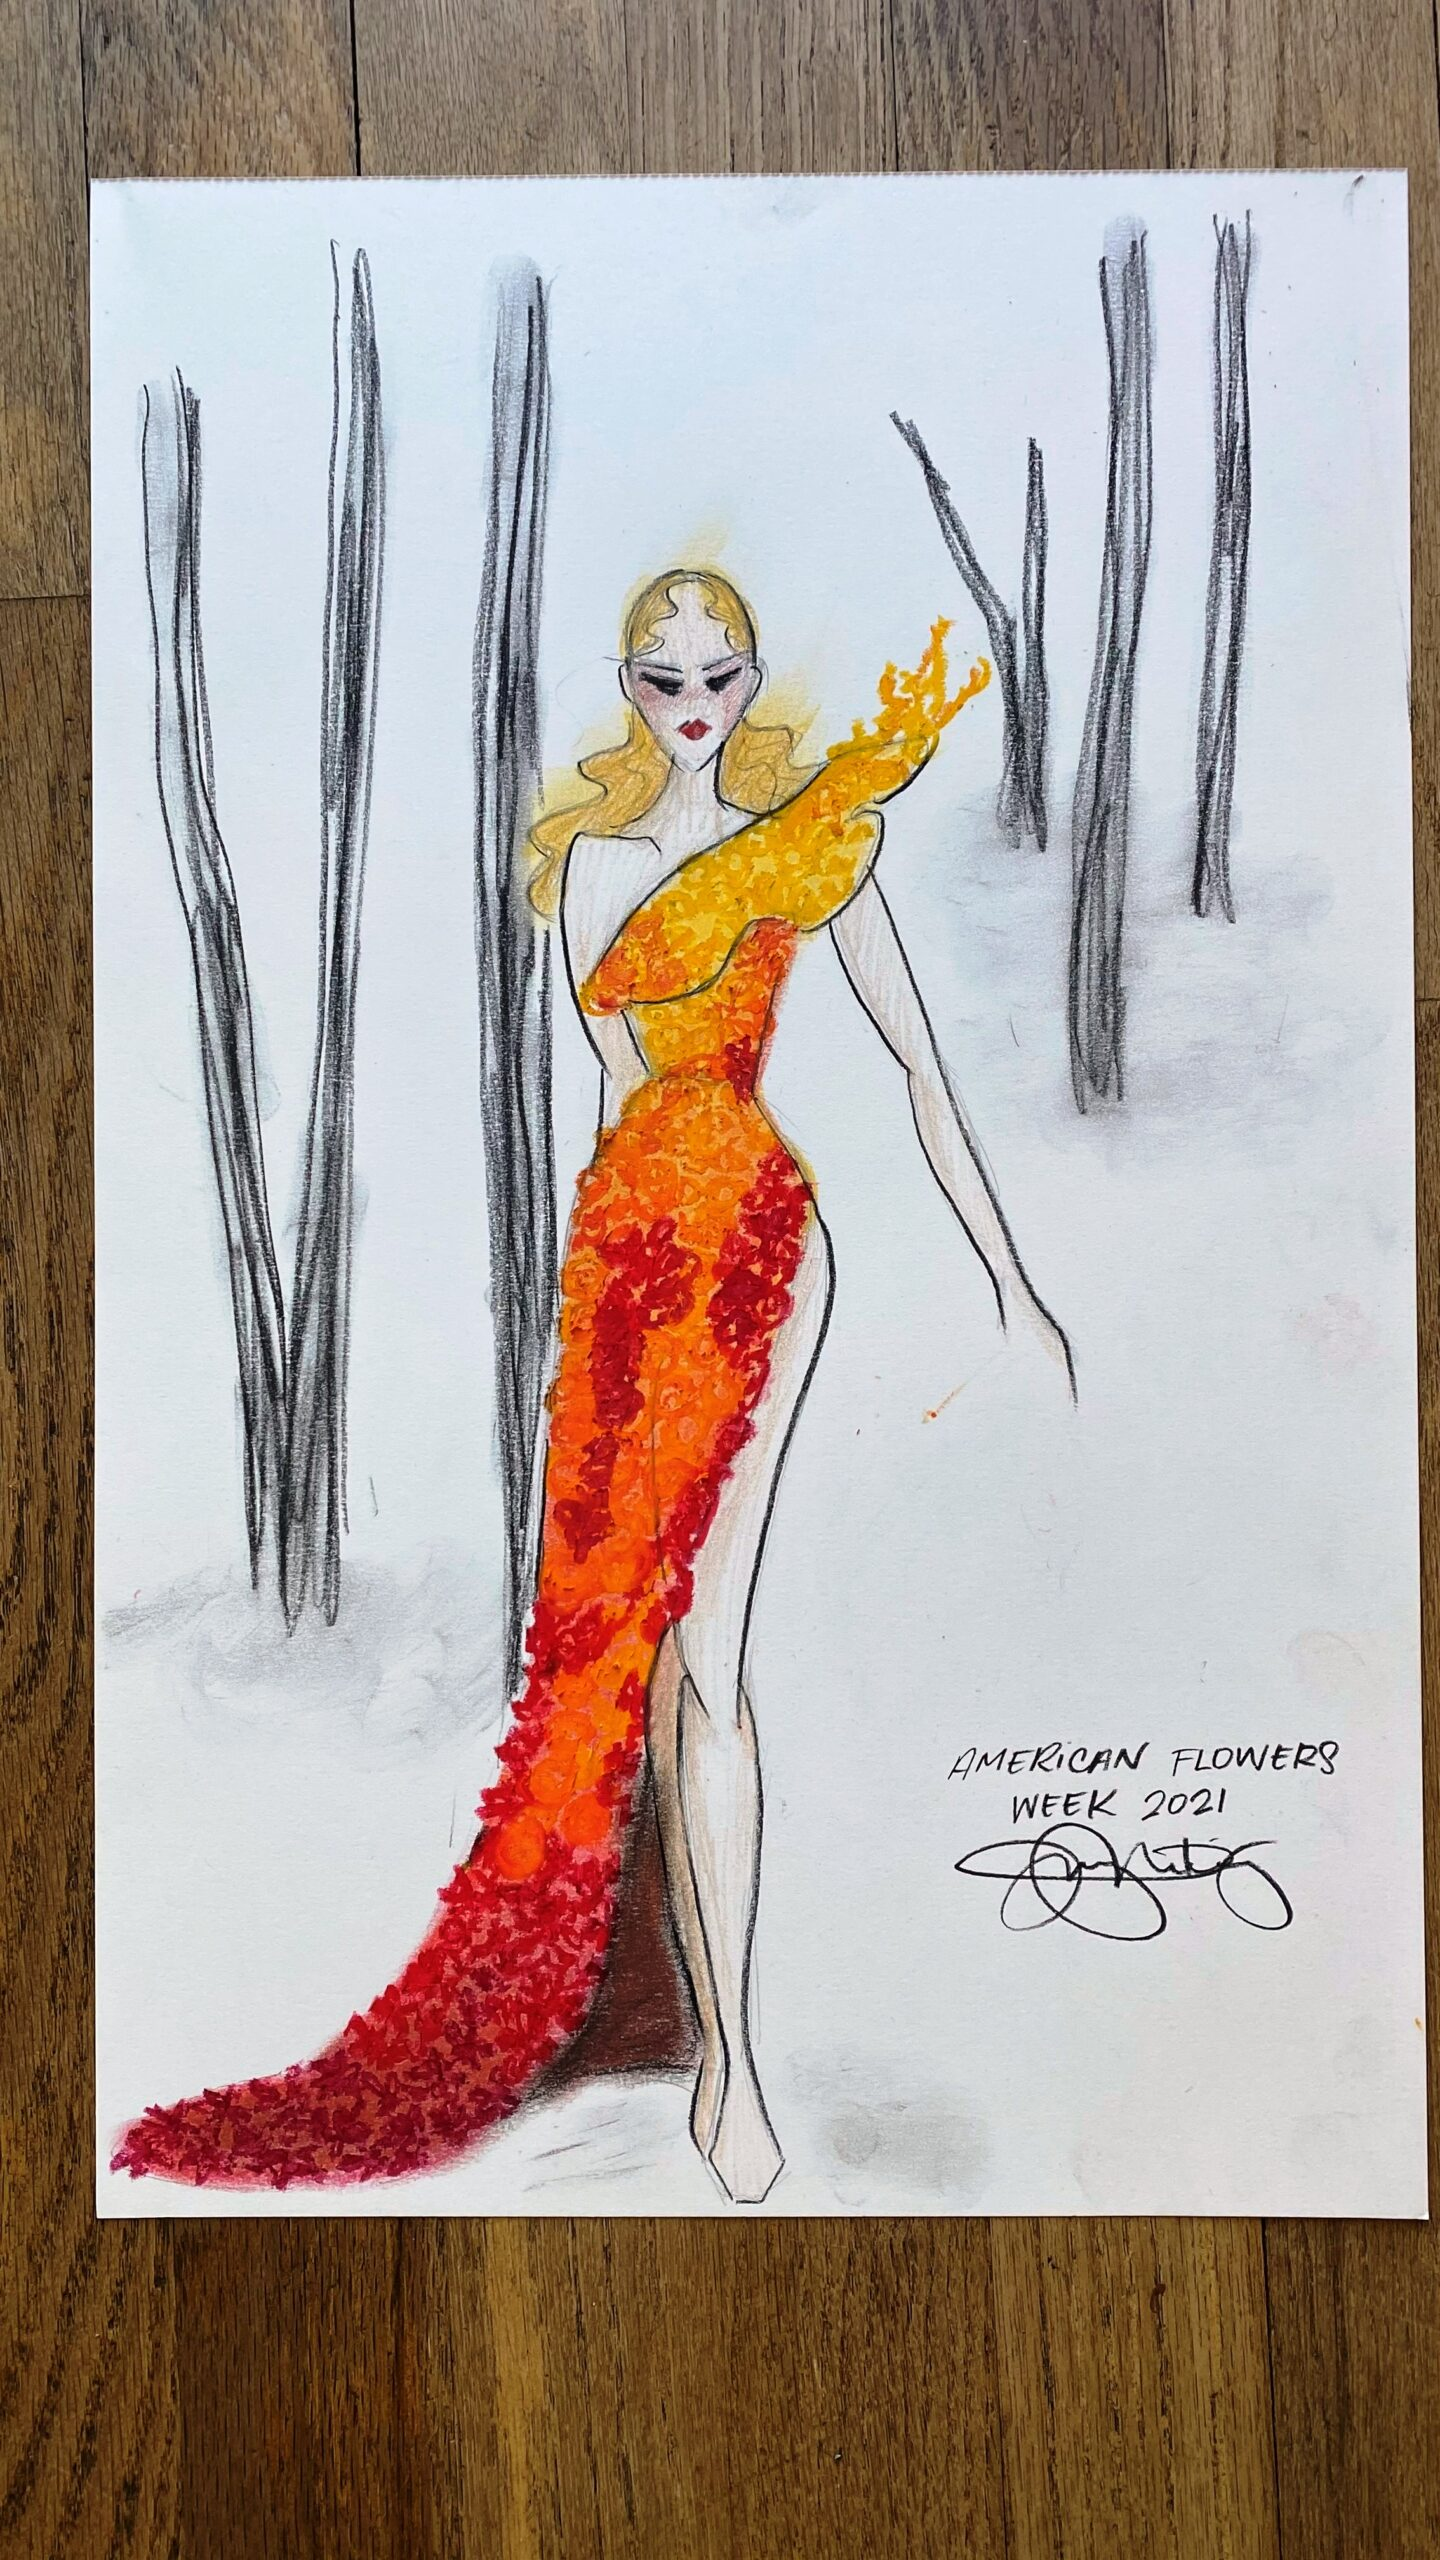 Jenny M Diaz sketch for botanical couture